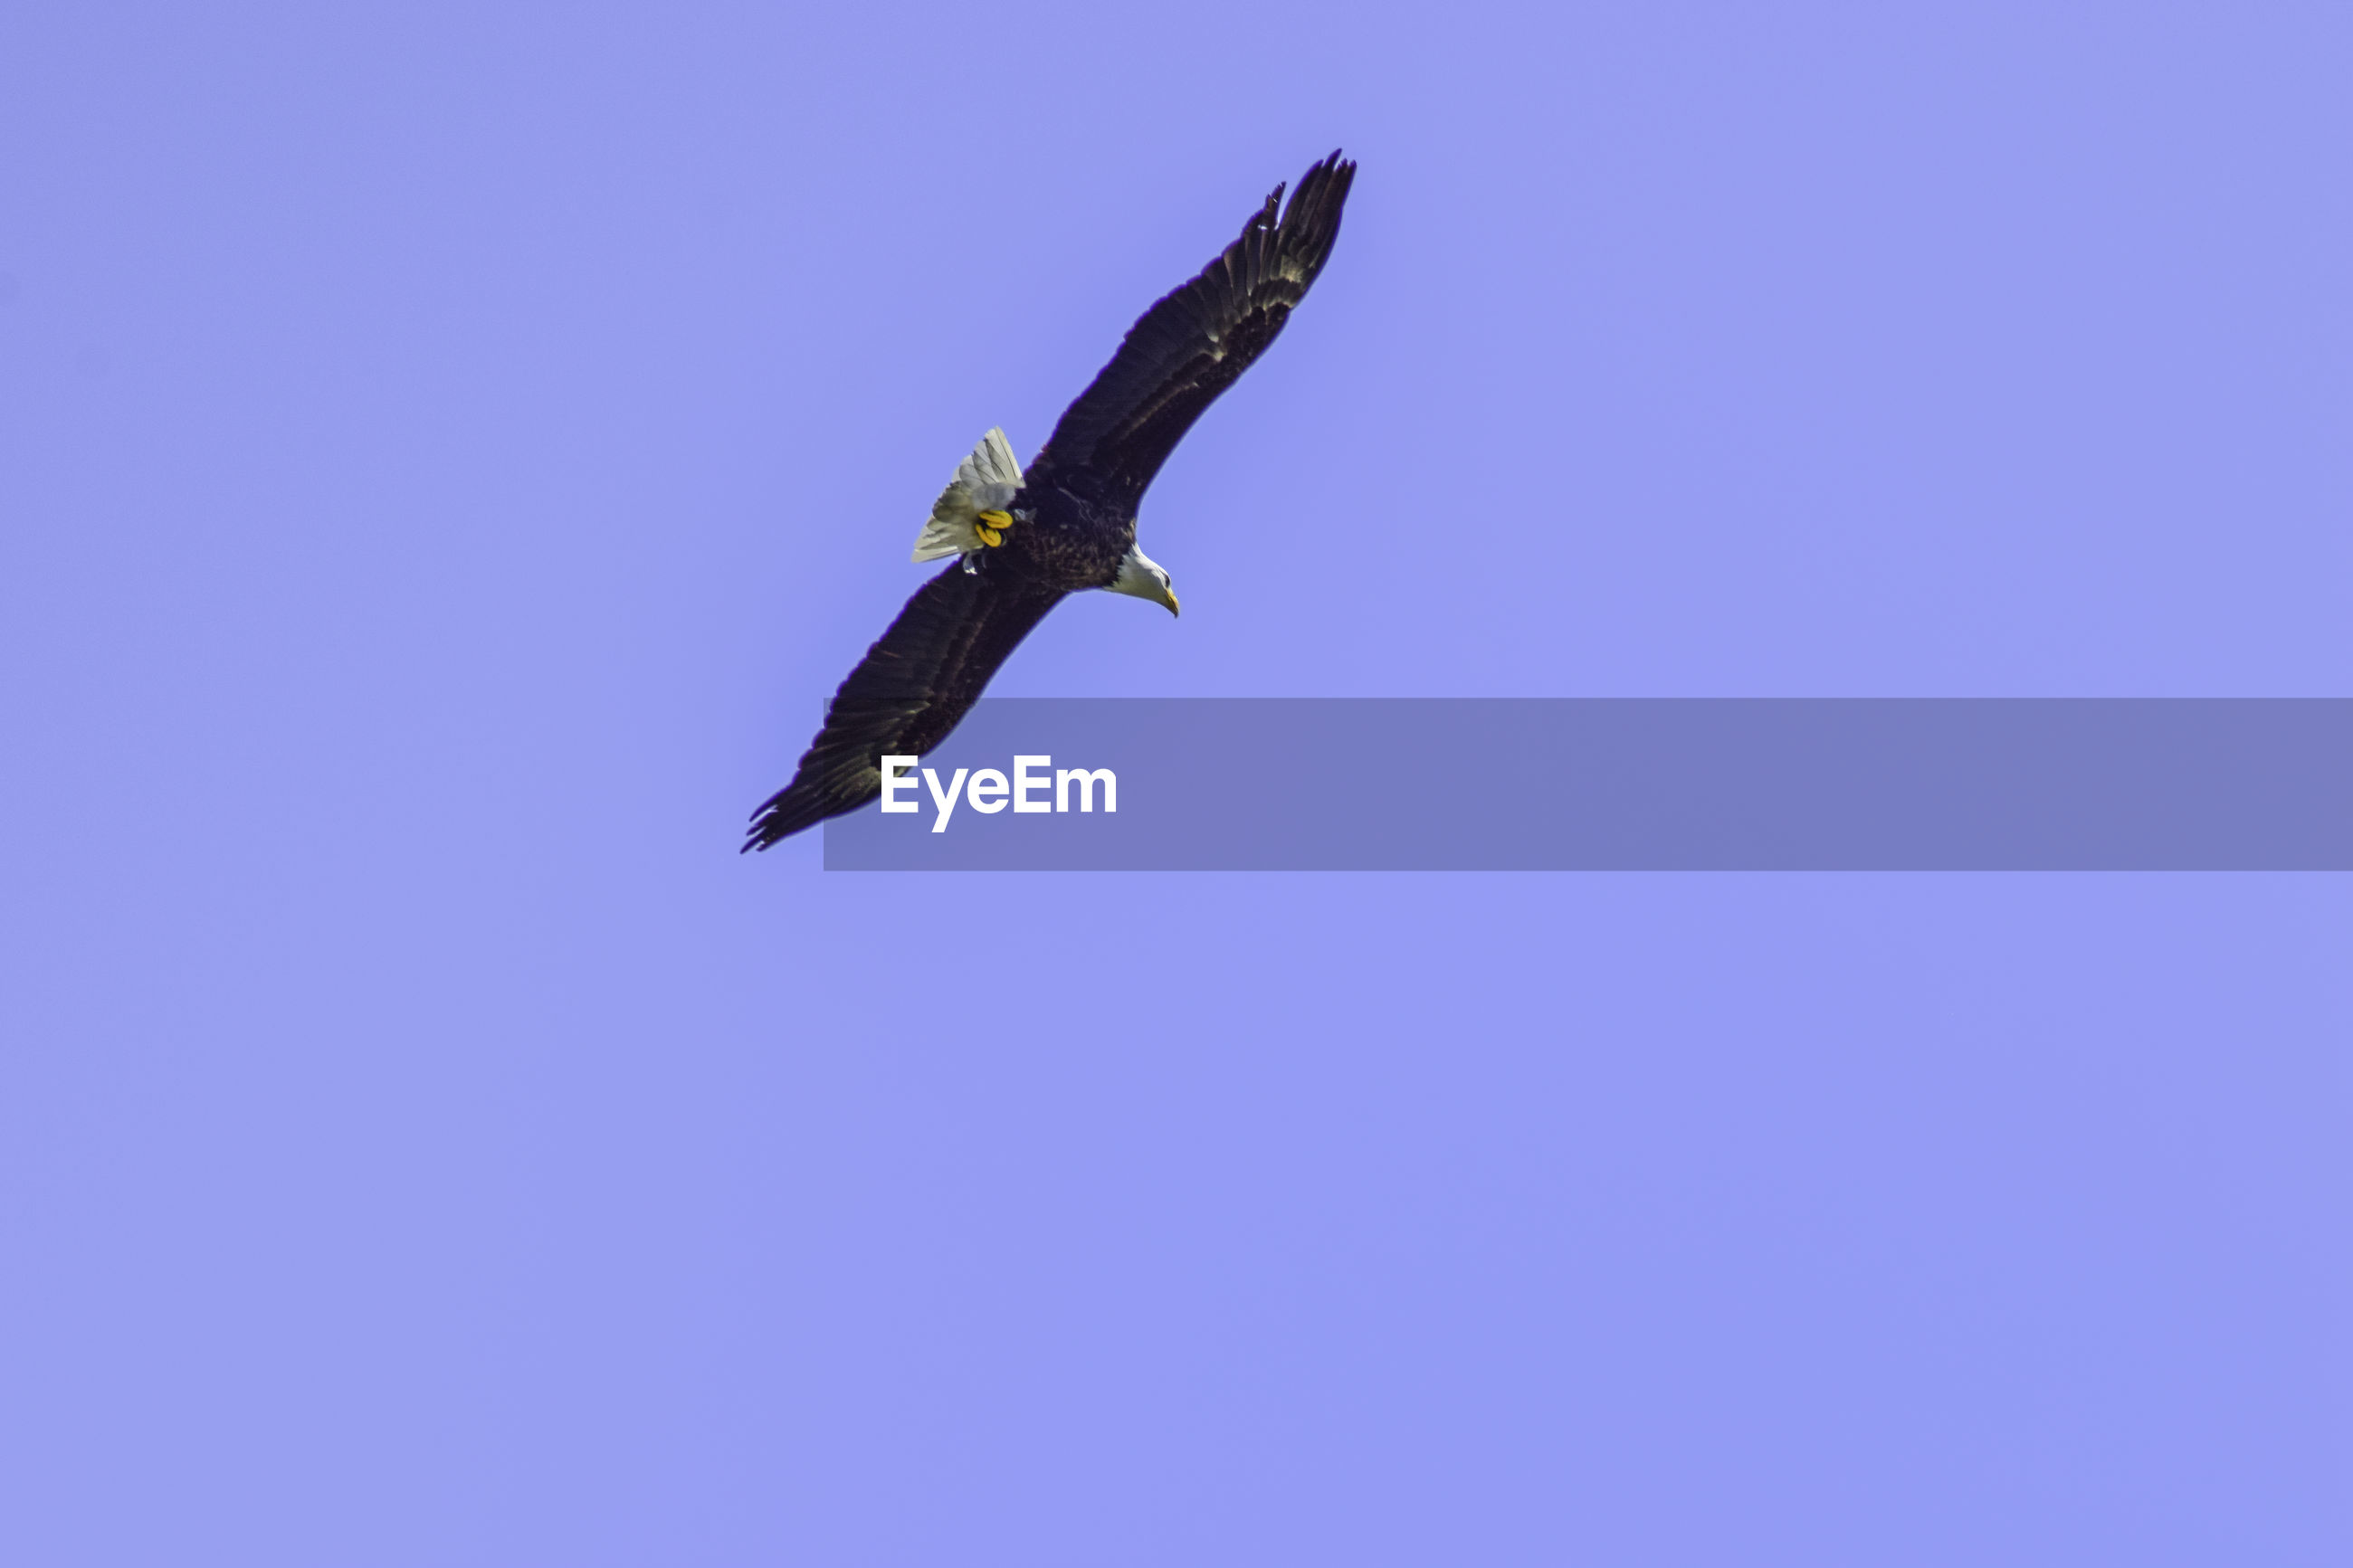 LOW ANGLE VIEW OF EAGLE FLYING AGAINST BLUE SKY